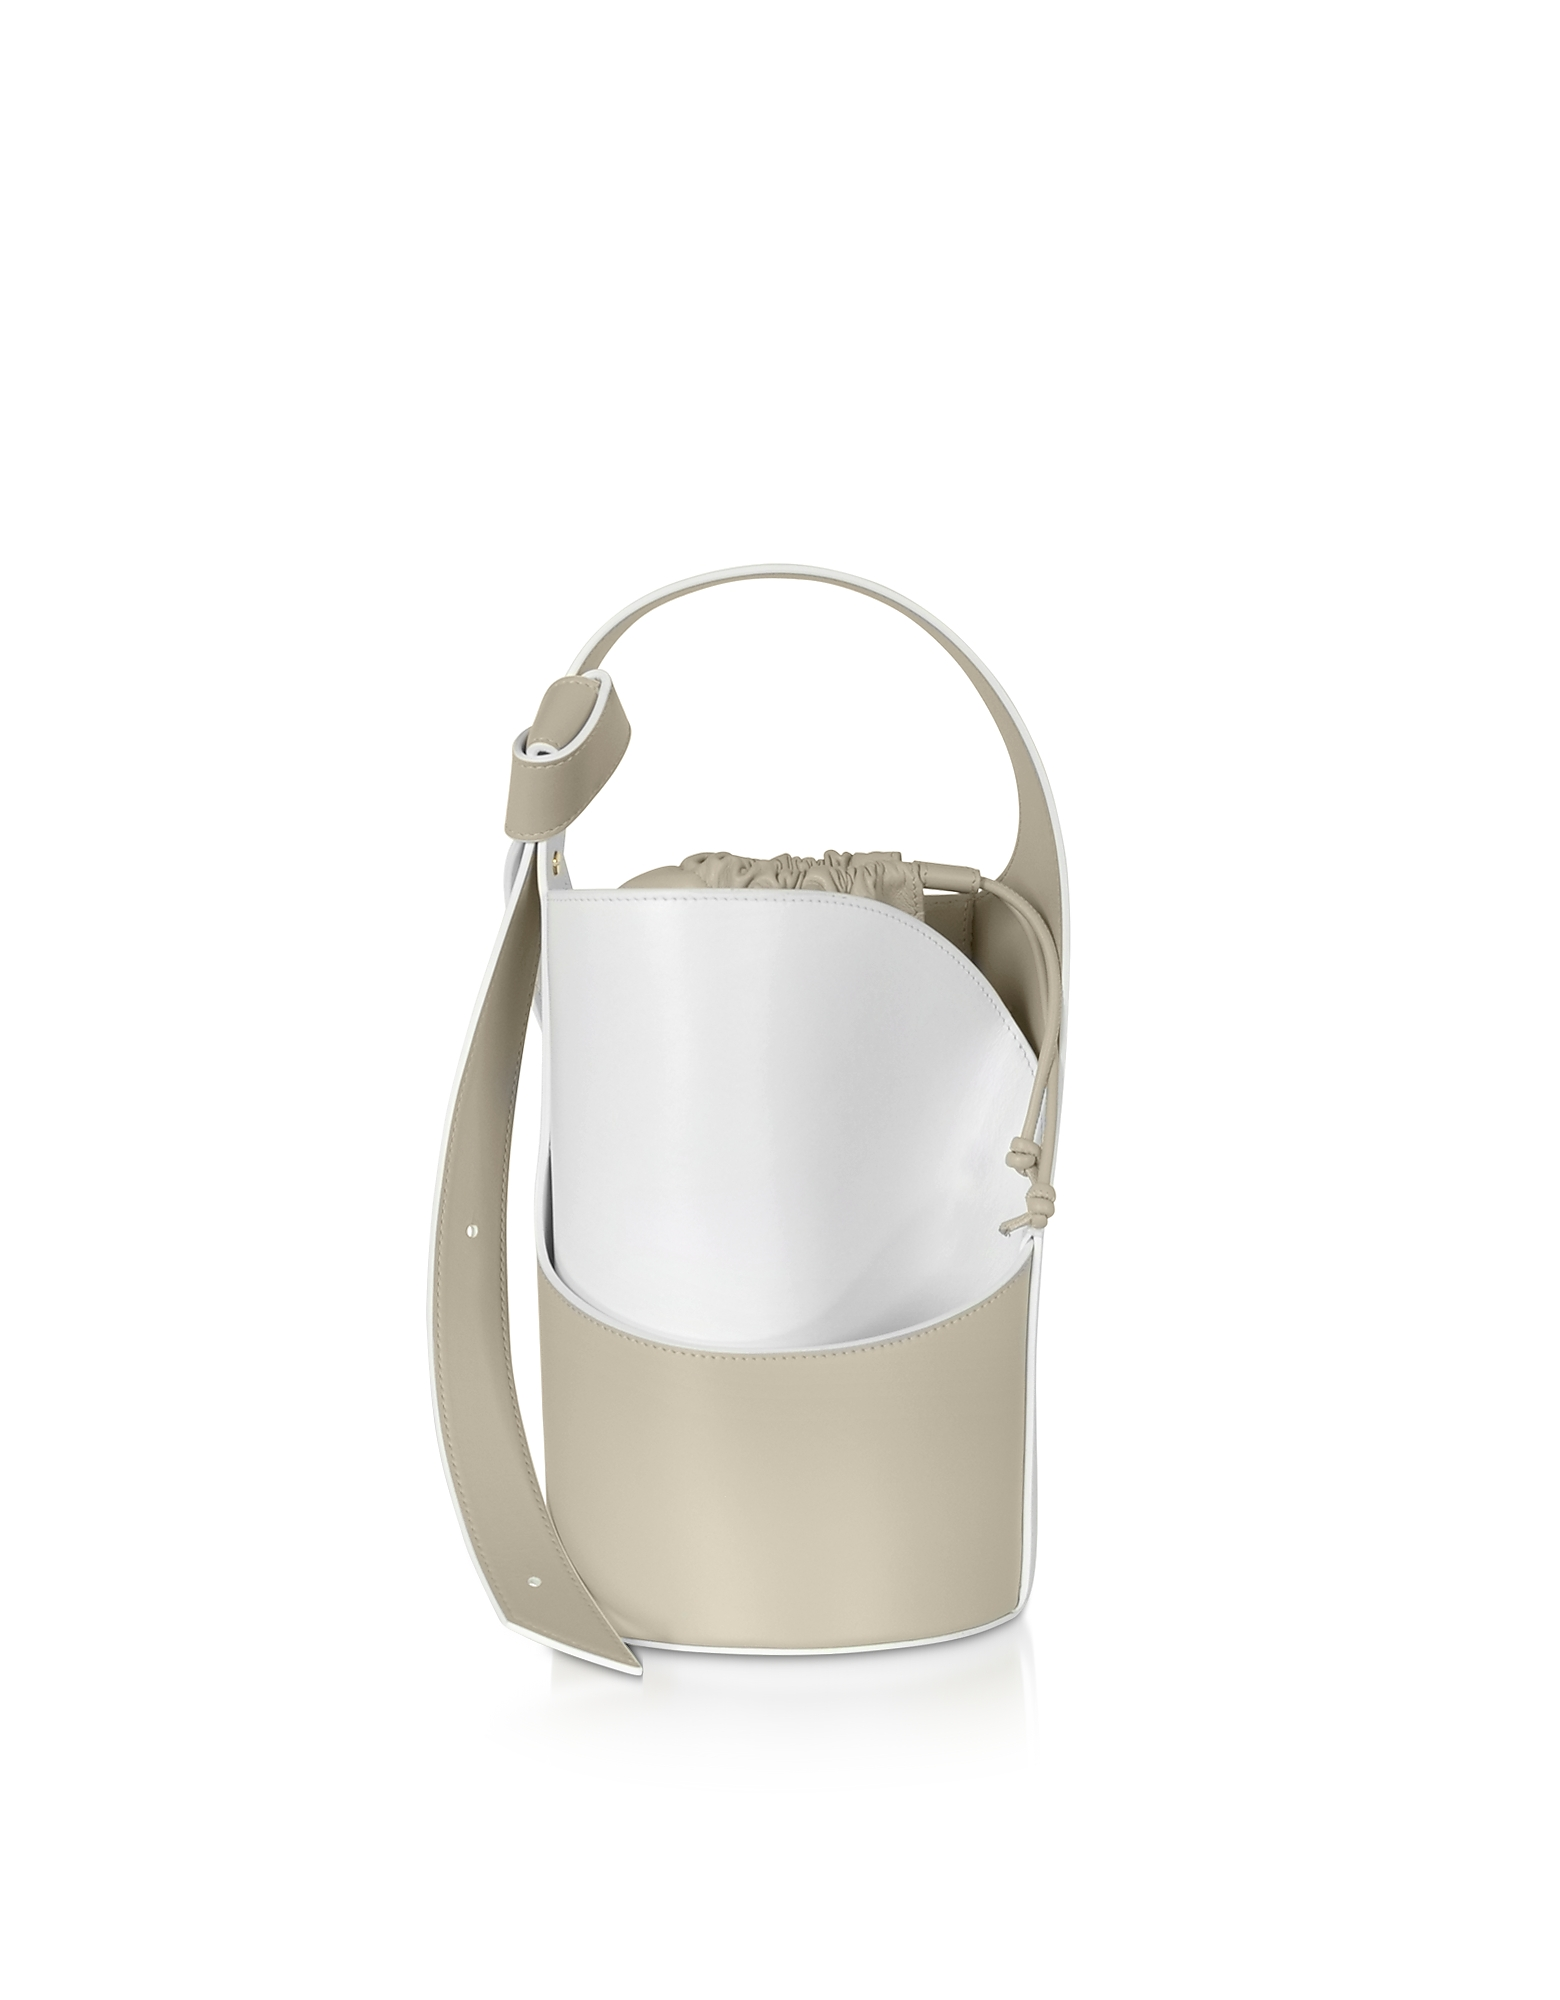 Giaquinto Designer Handbags, Lily Mini Egret White Bucket Bag